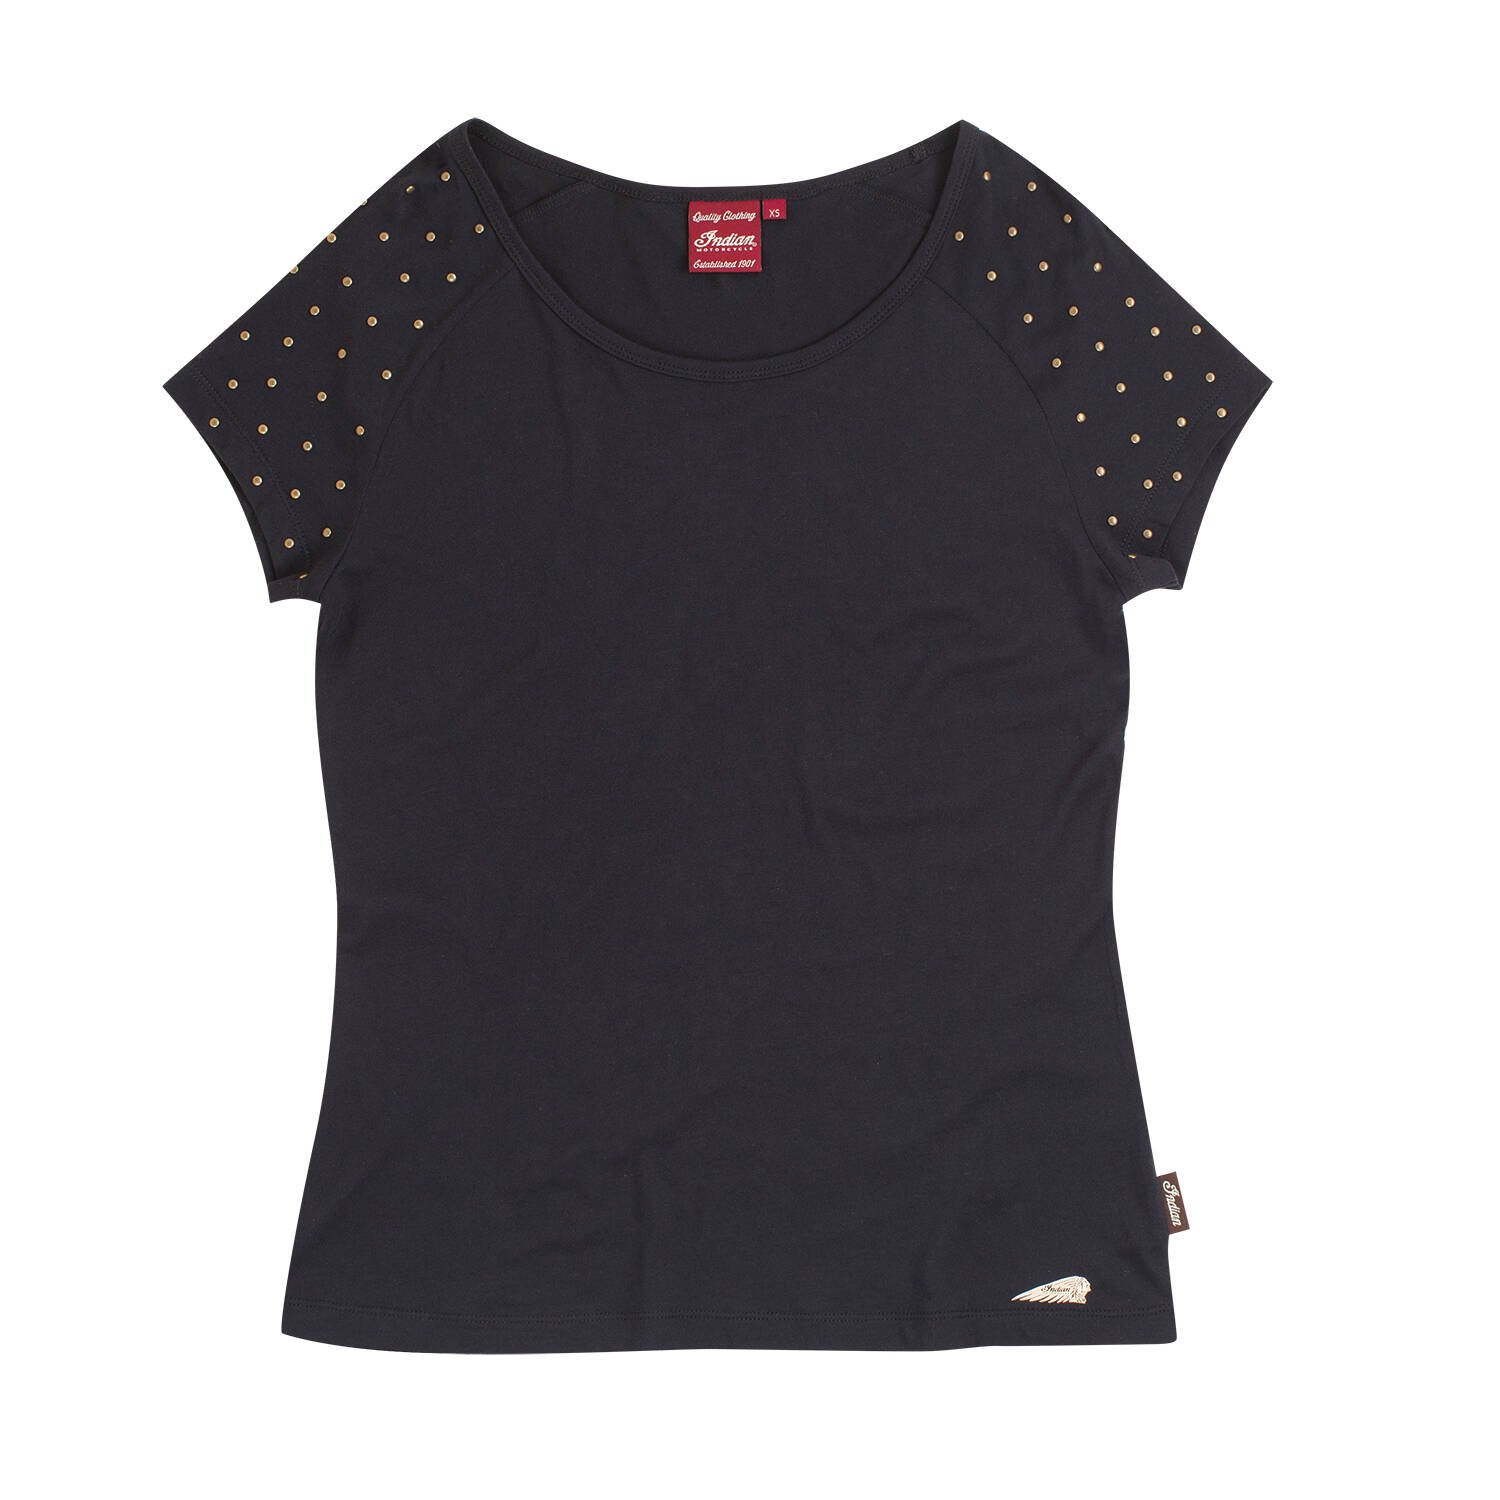 Women's T-Shirt with Studded Shoulder Design, Black